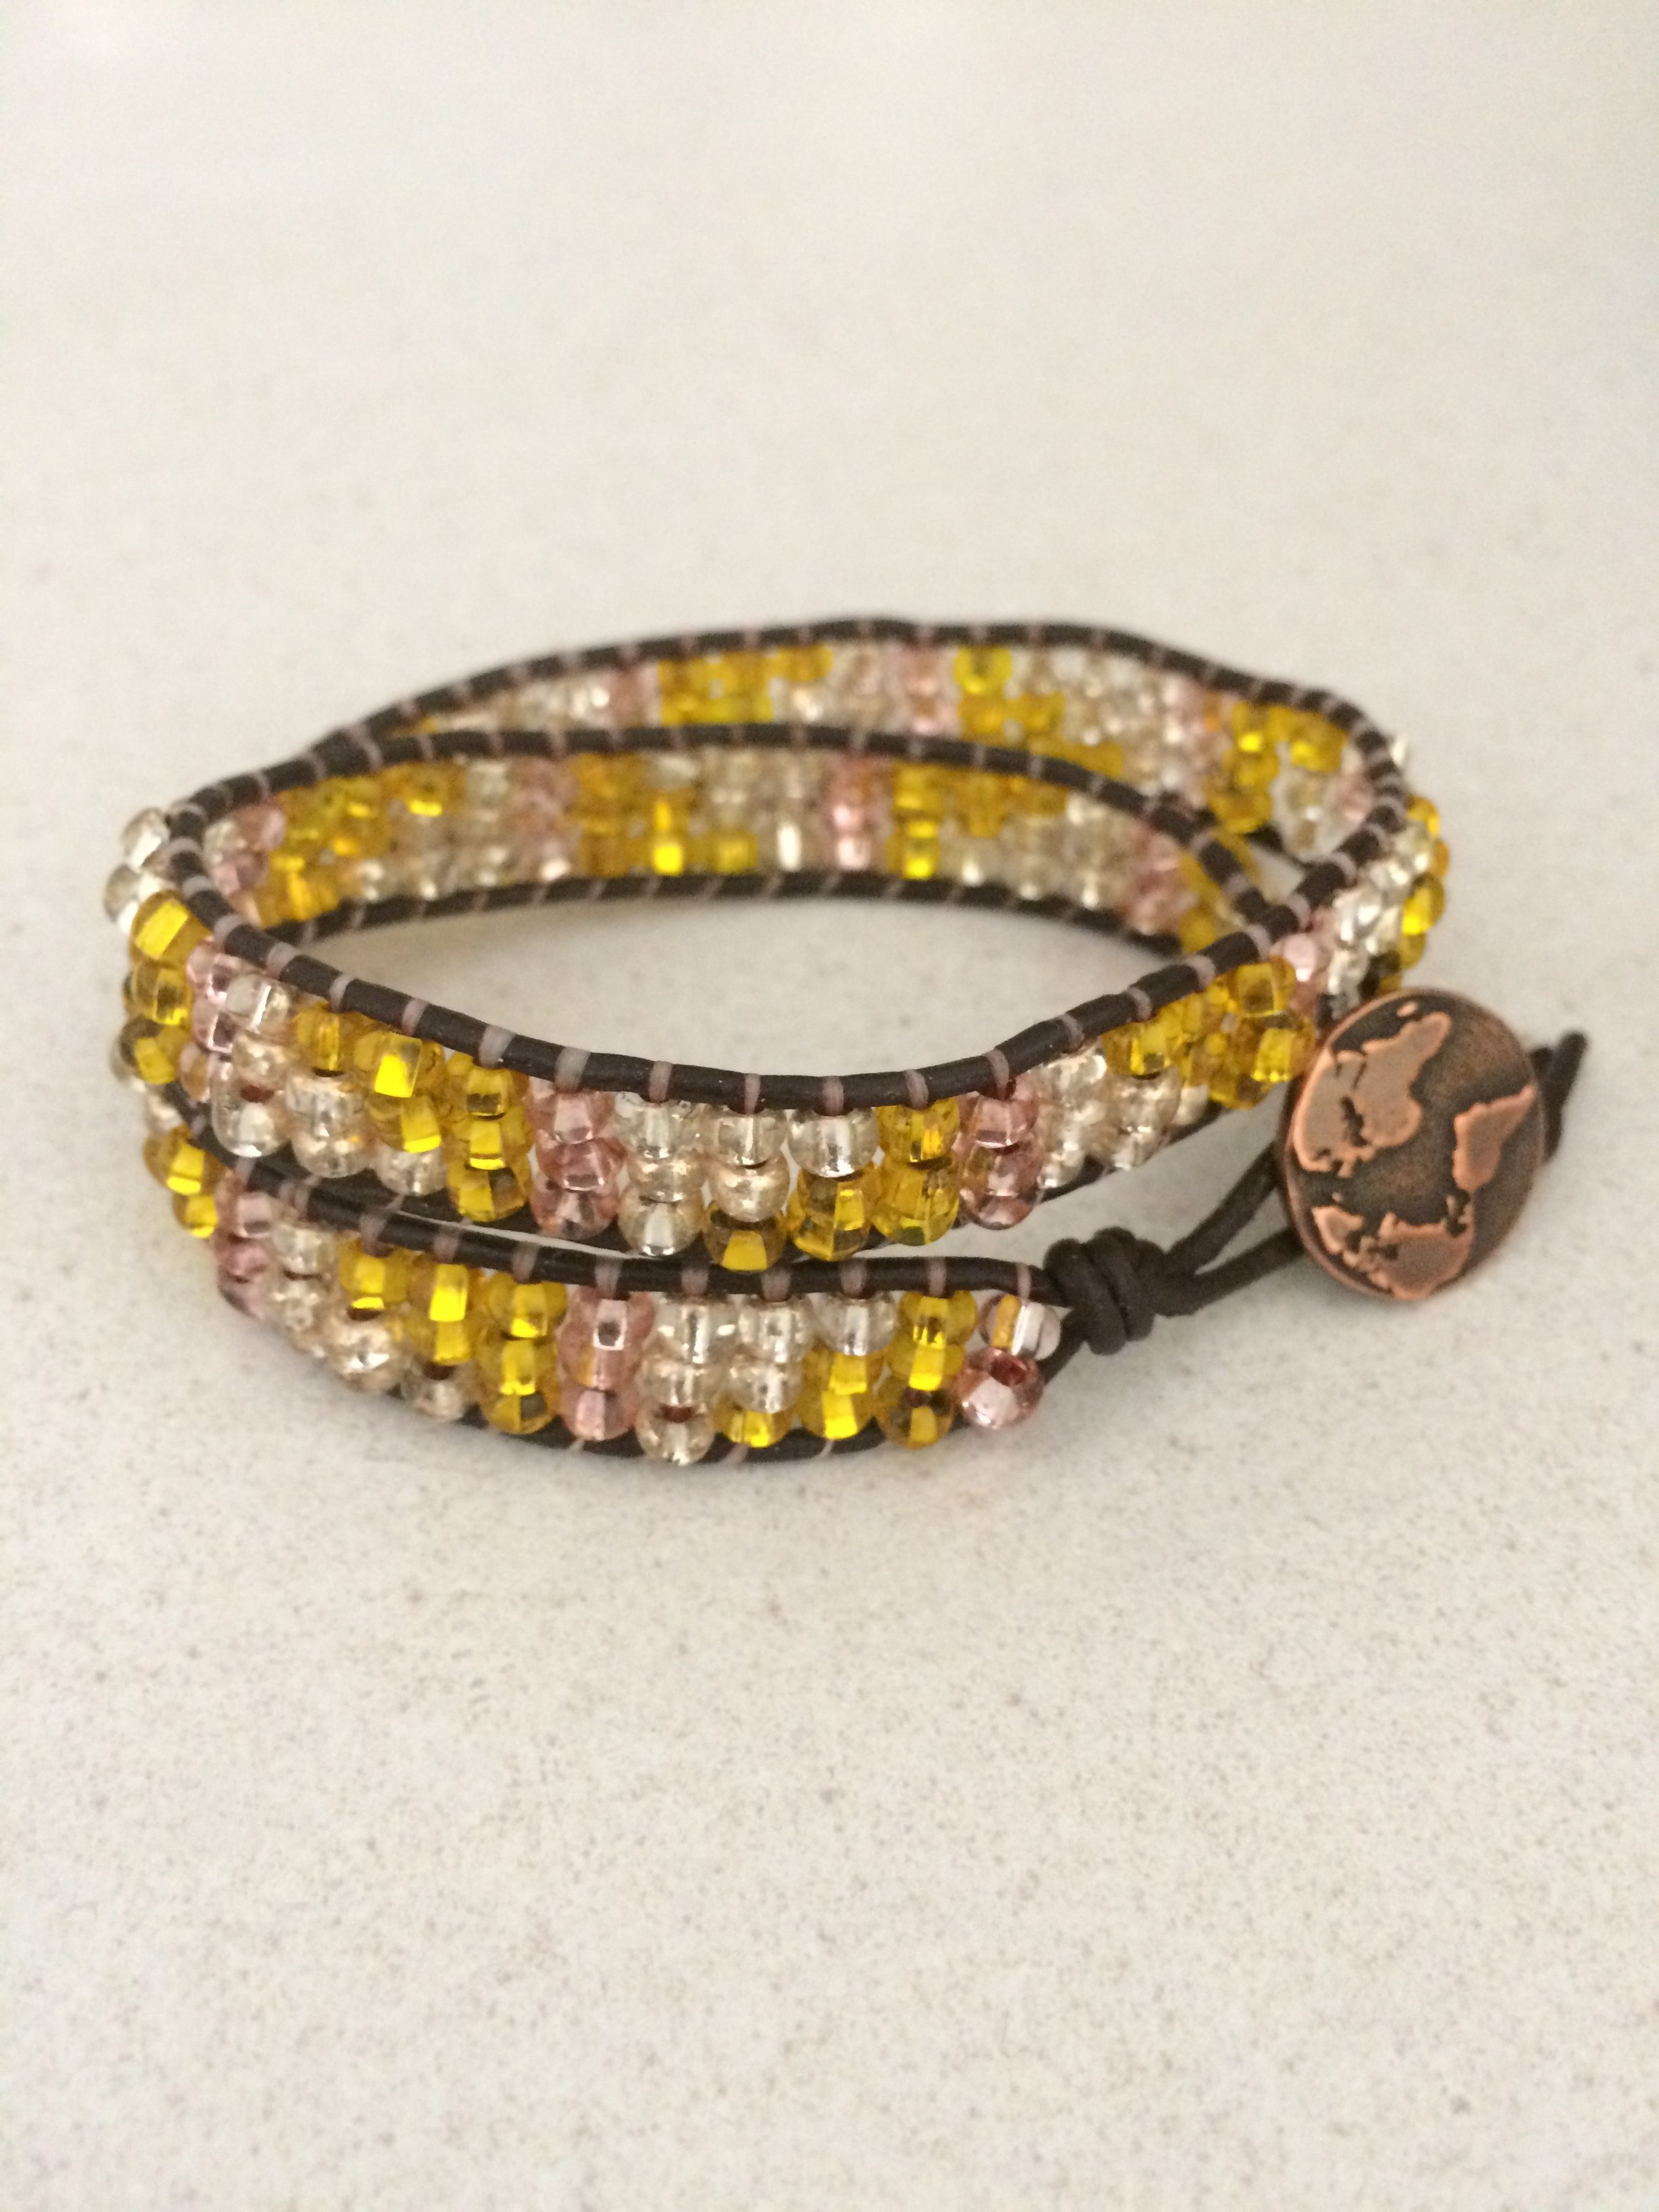 Seed Beads Leather Woven Bracelet